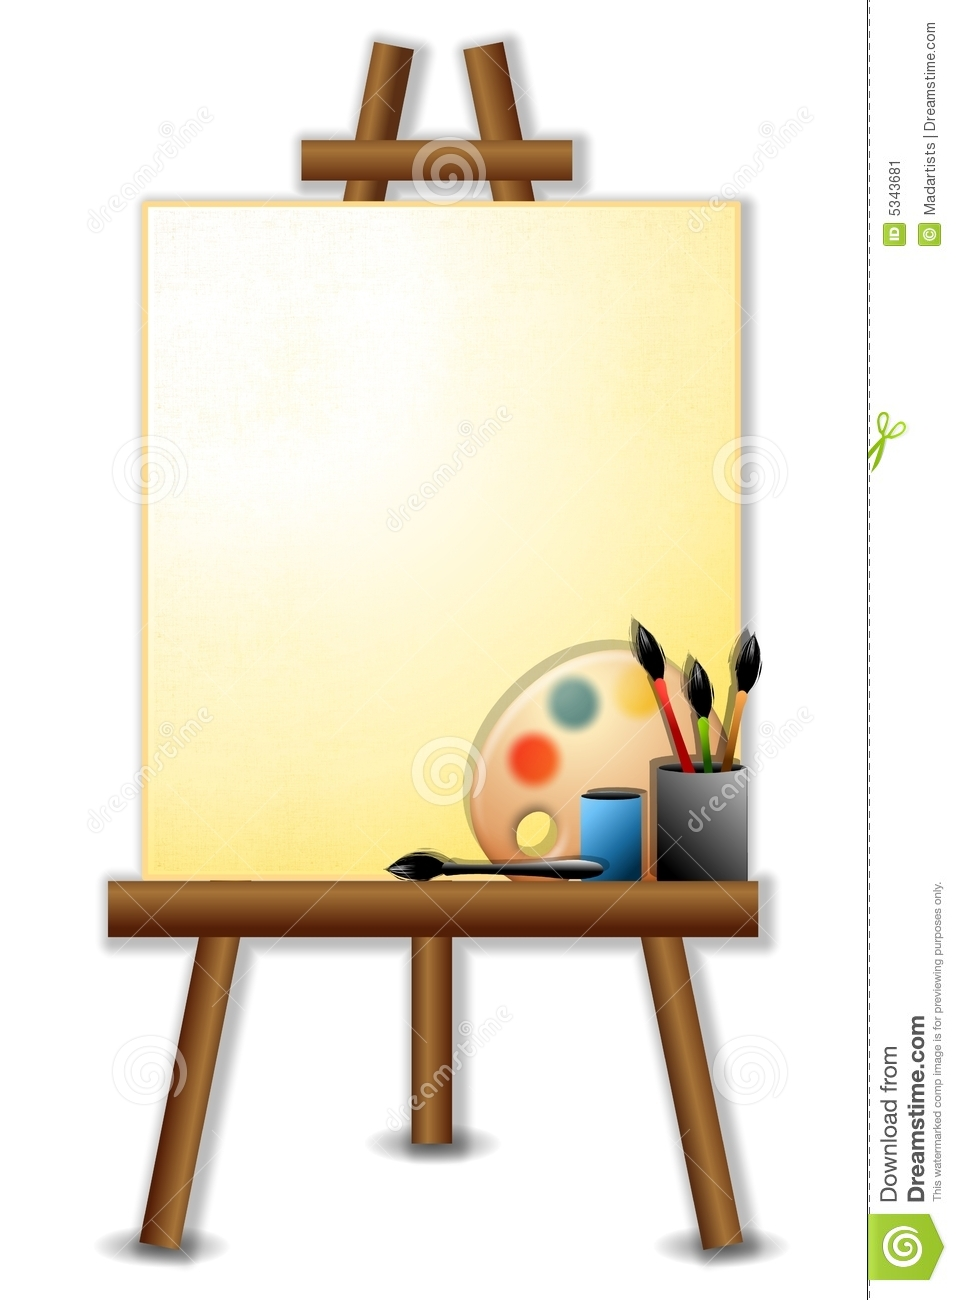 Painting Easel Clipart Free.